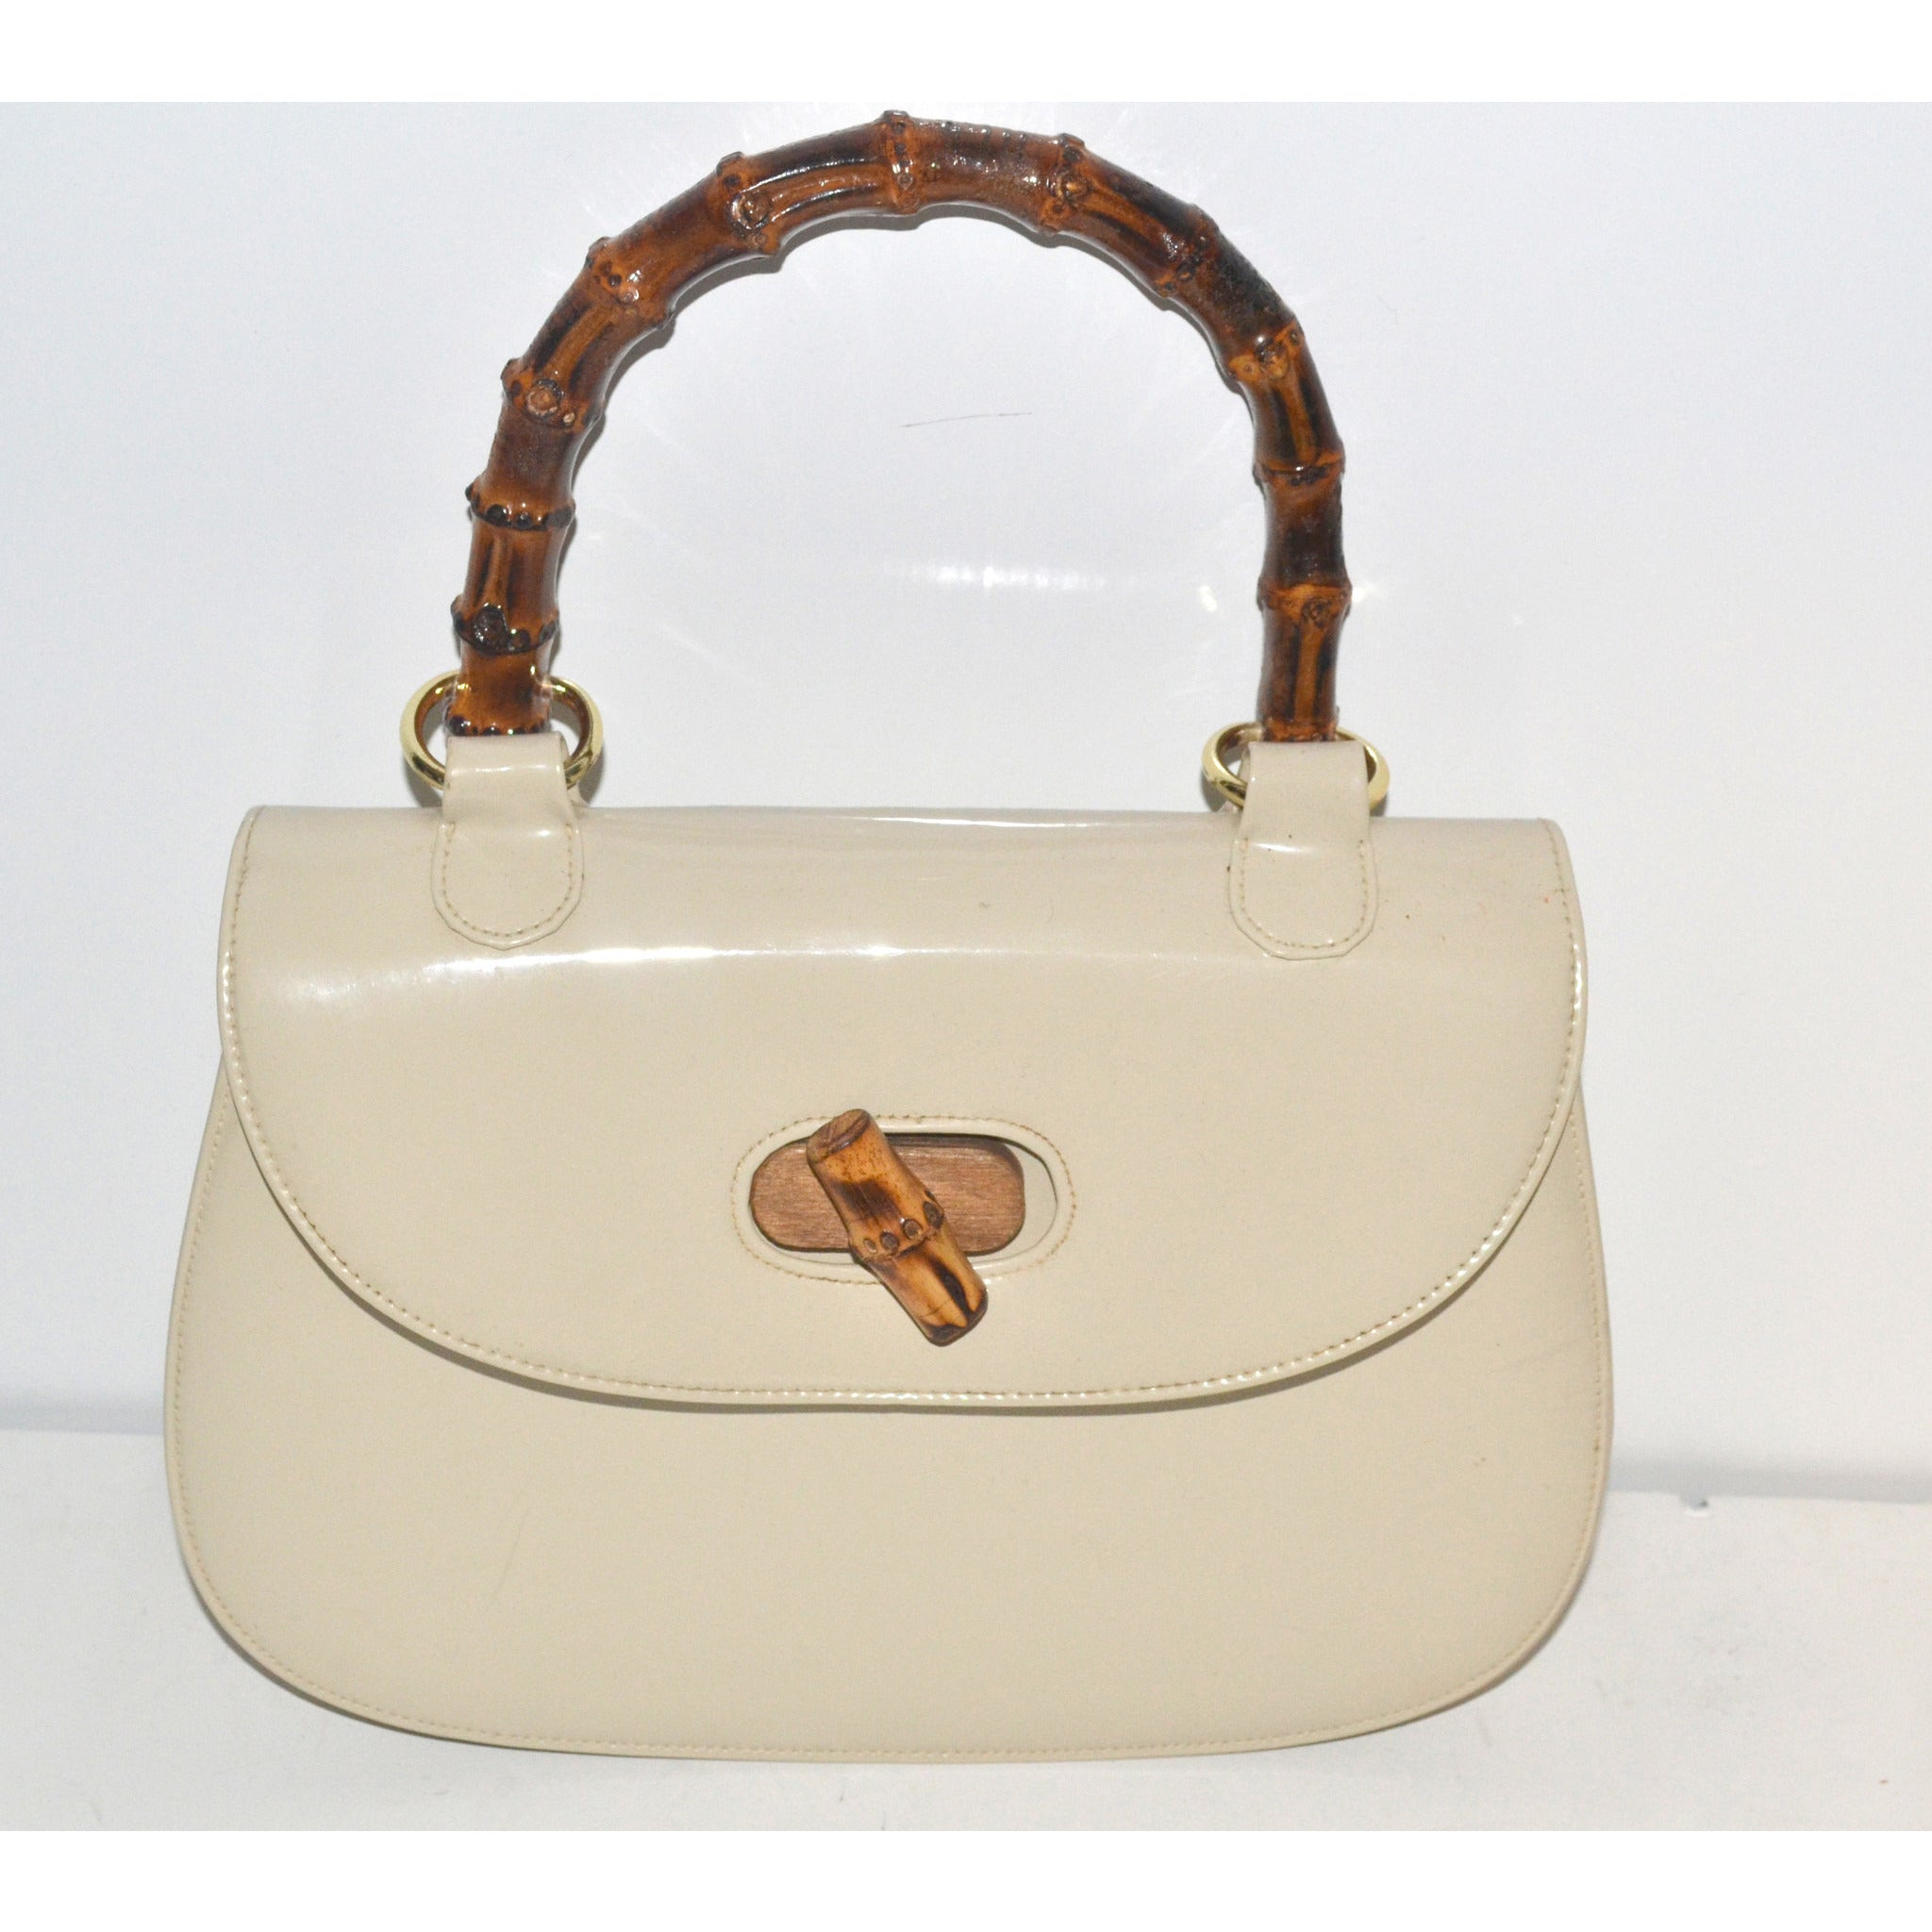 Vintage Gucci Style Patent Leather Bamboo Purse By Bonwit Teller